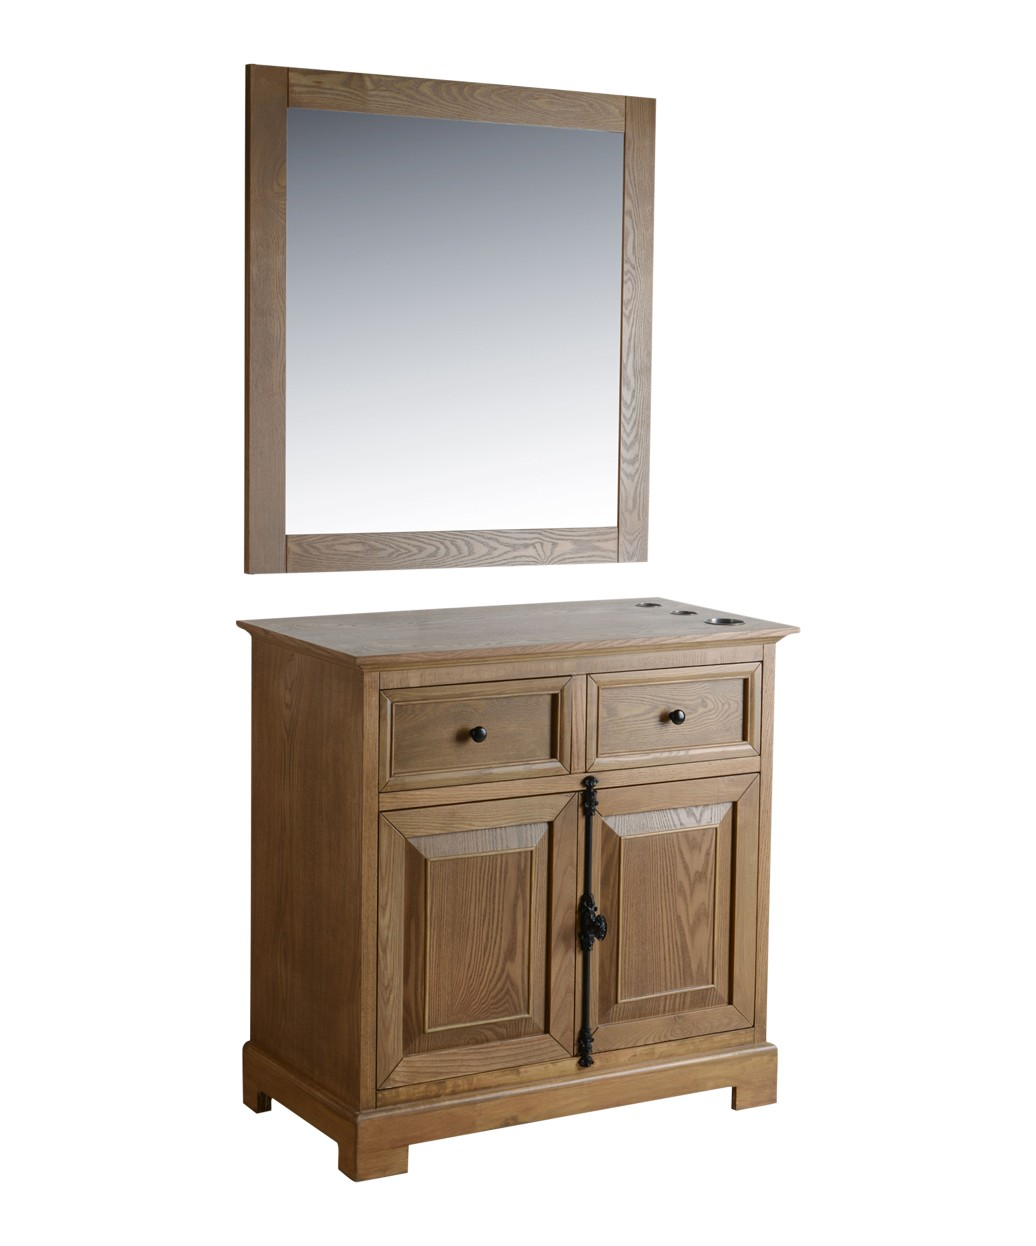 "St. James 36"" Light Oak Vanity Styling Station & Mirror"